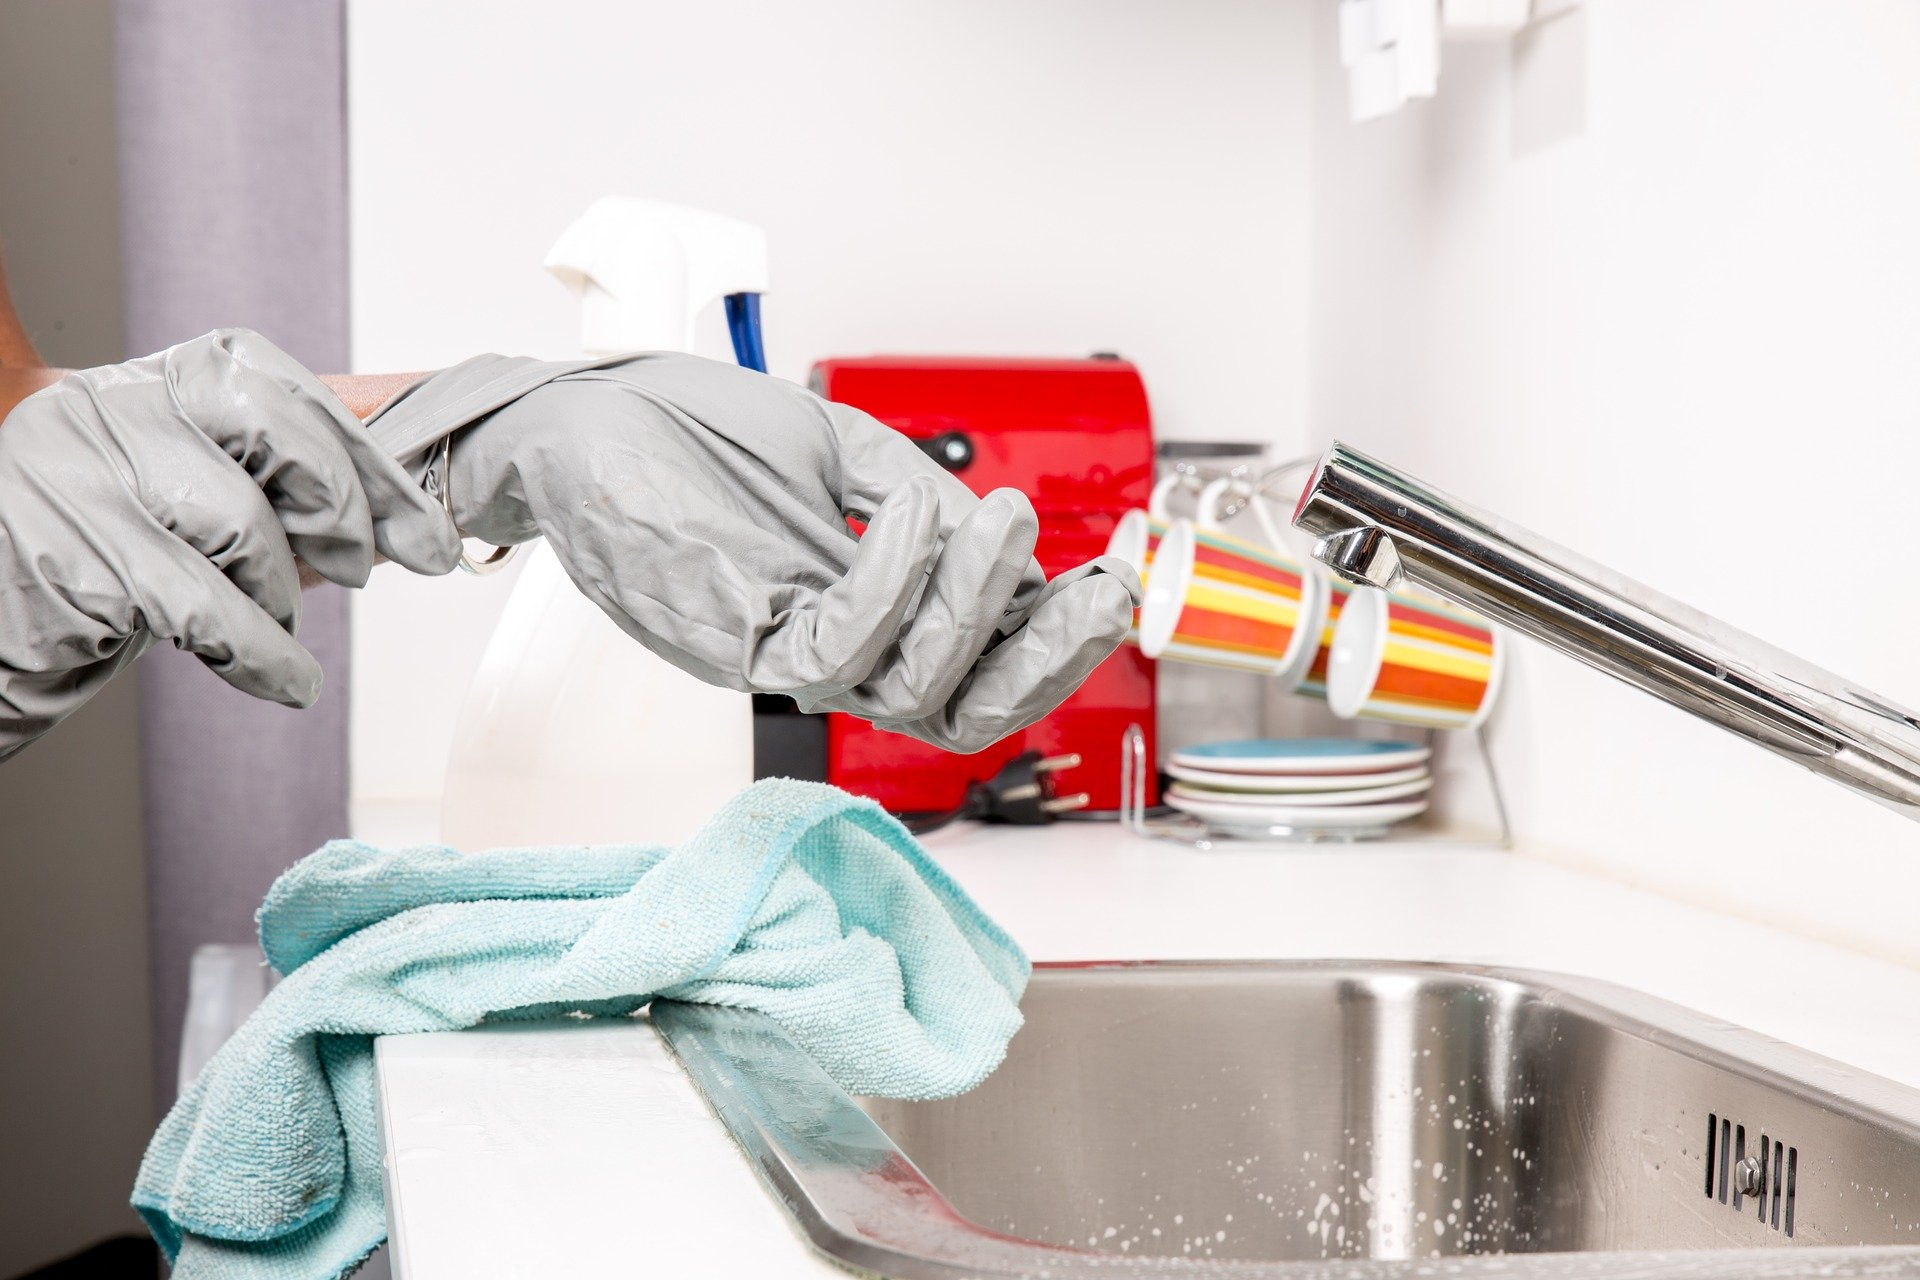 cleanliness-2799470_1920